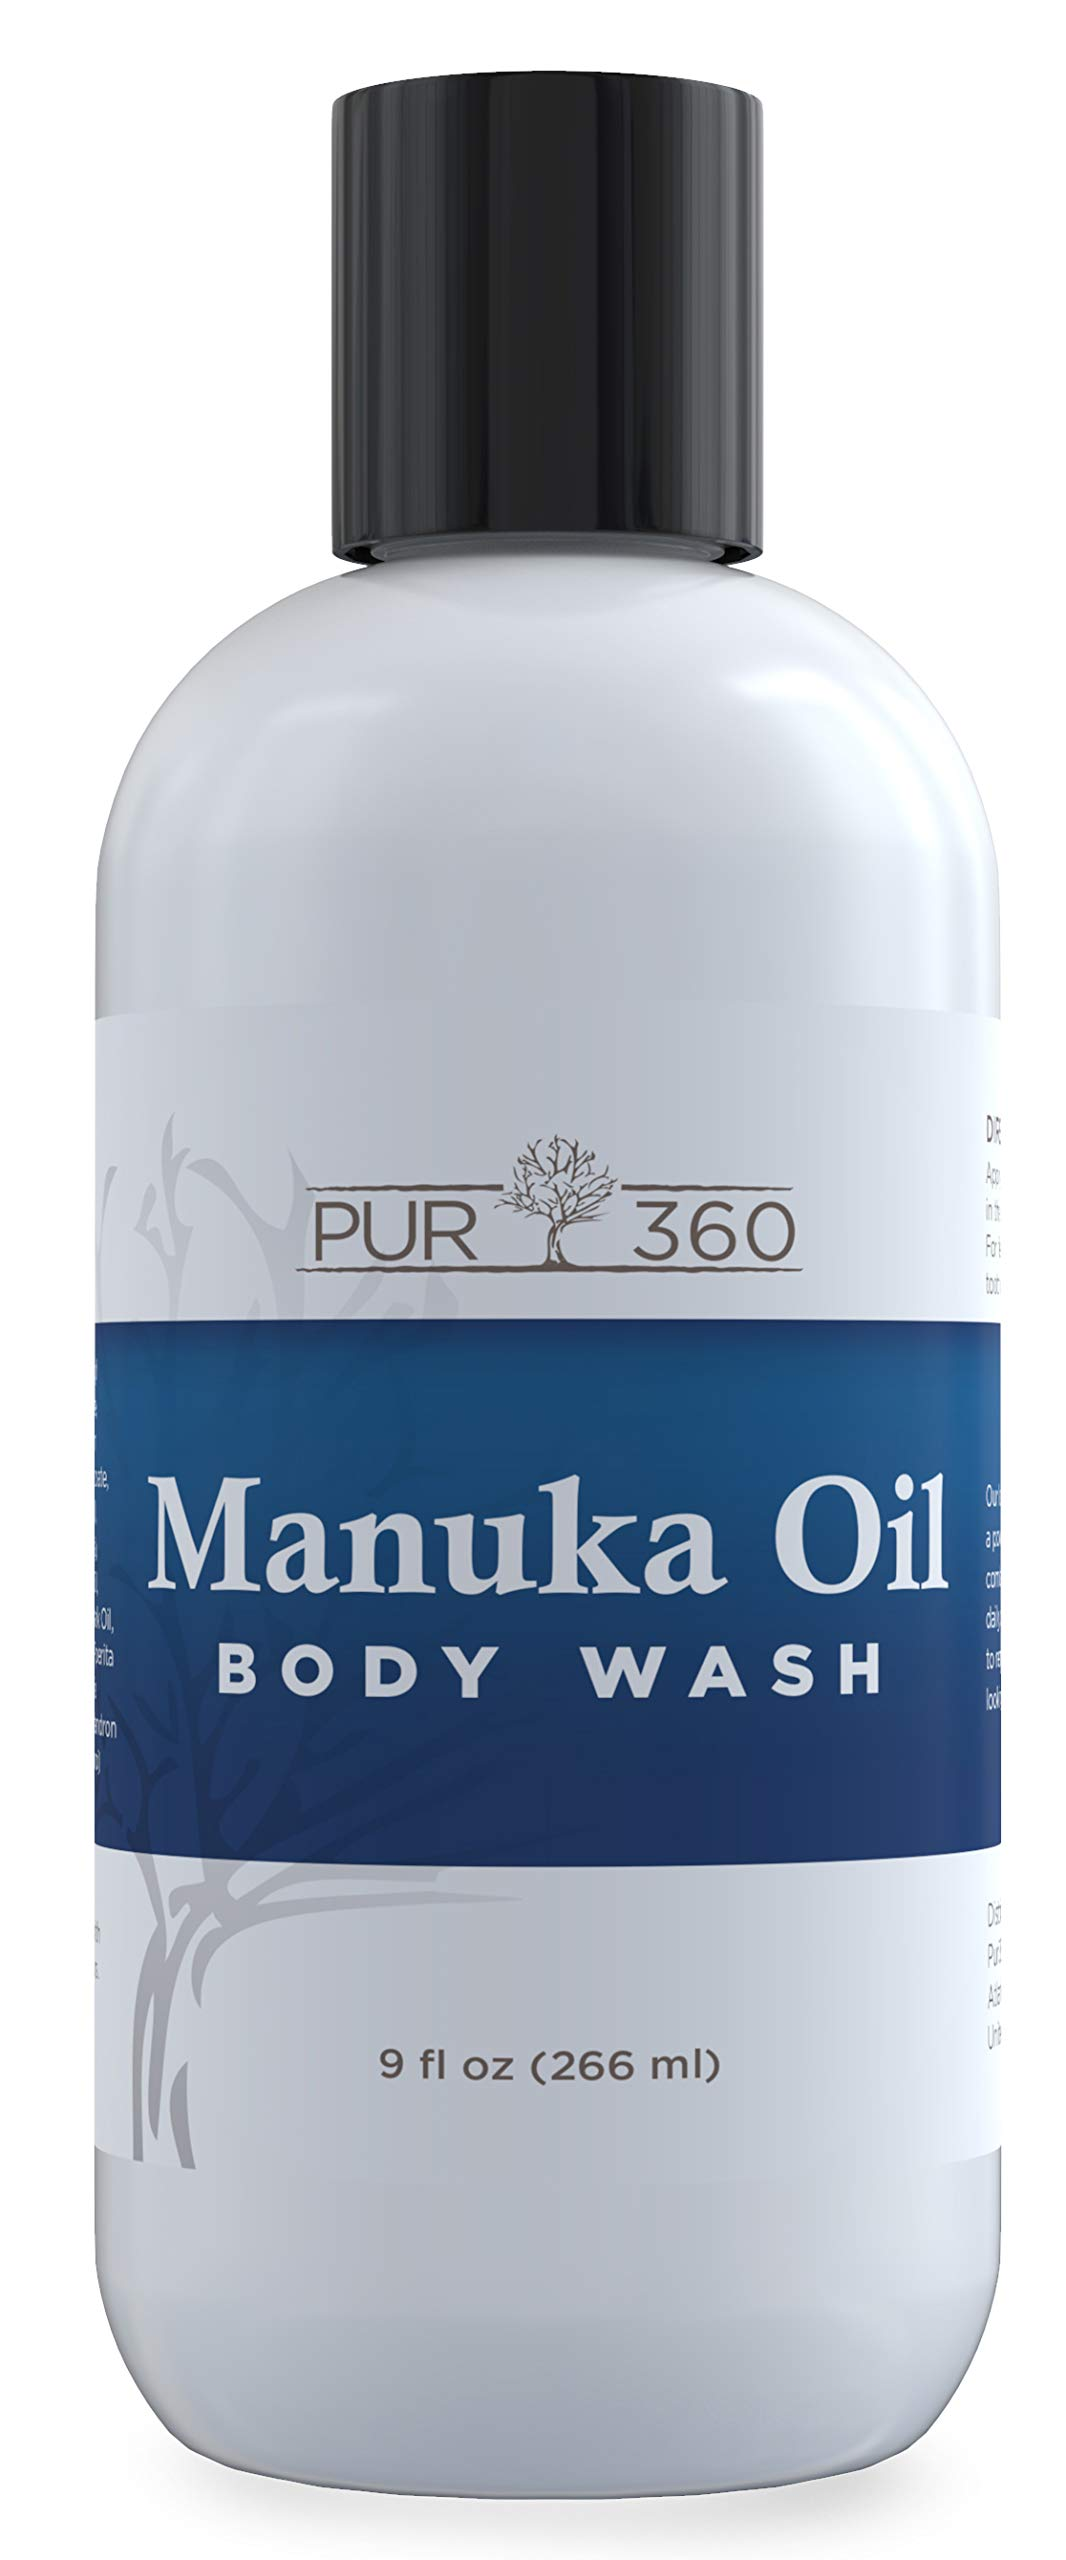 Pur360 Manuka Oil Body and Foot Wash - 33x More Powerful Than Tea Tree Oil - Antifungal Soap, Antibacterial, Acne Wash, Use Alone or in Conjunction with Other Products for Maximum Results by PUR360